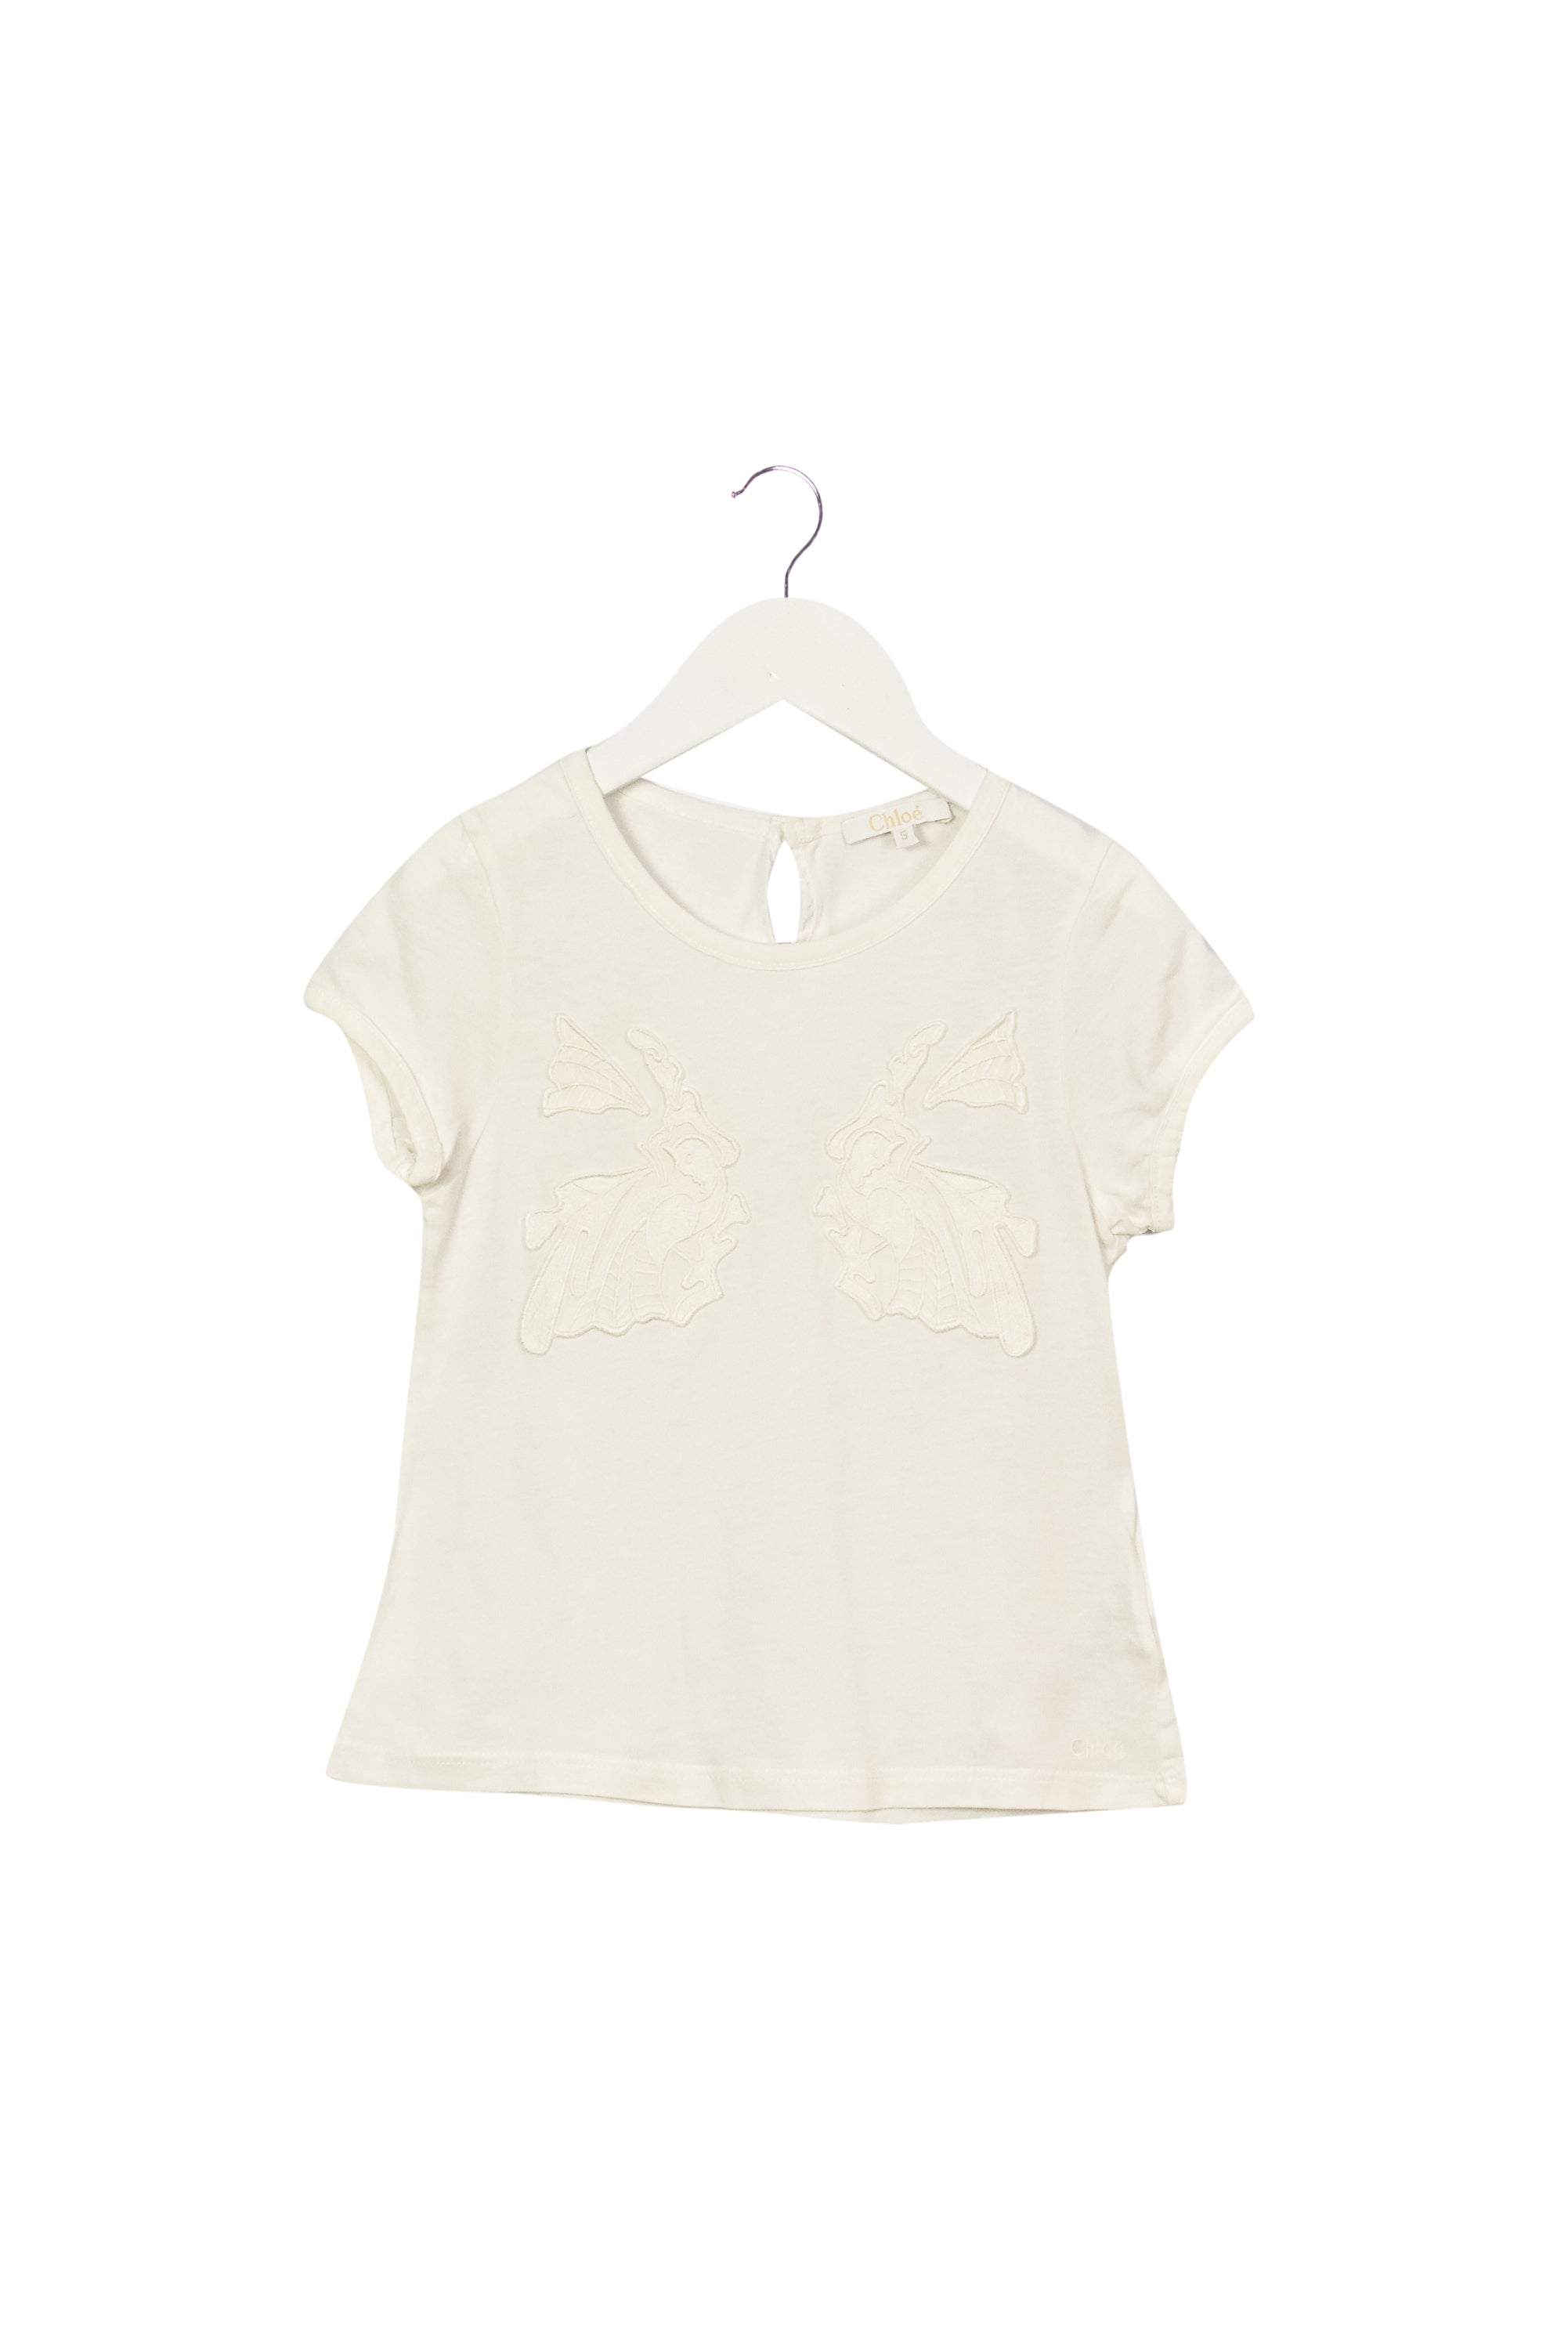 10035339 Chloe Kids~Top 5T at Retykle